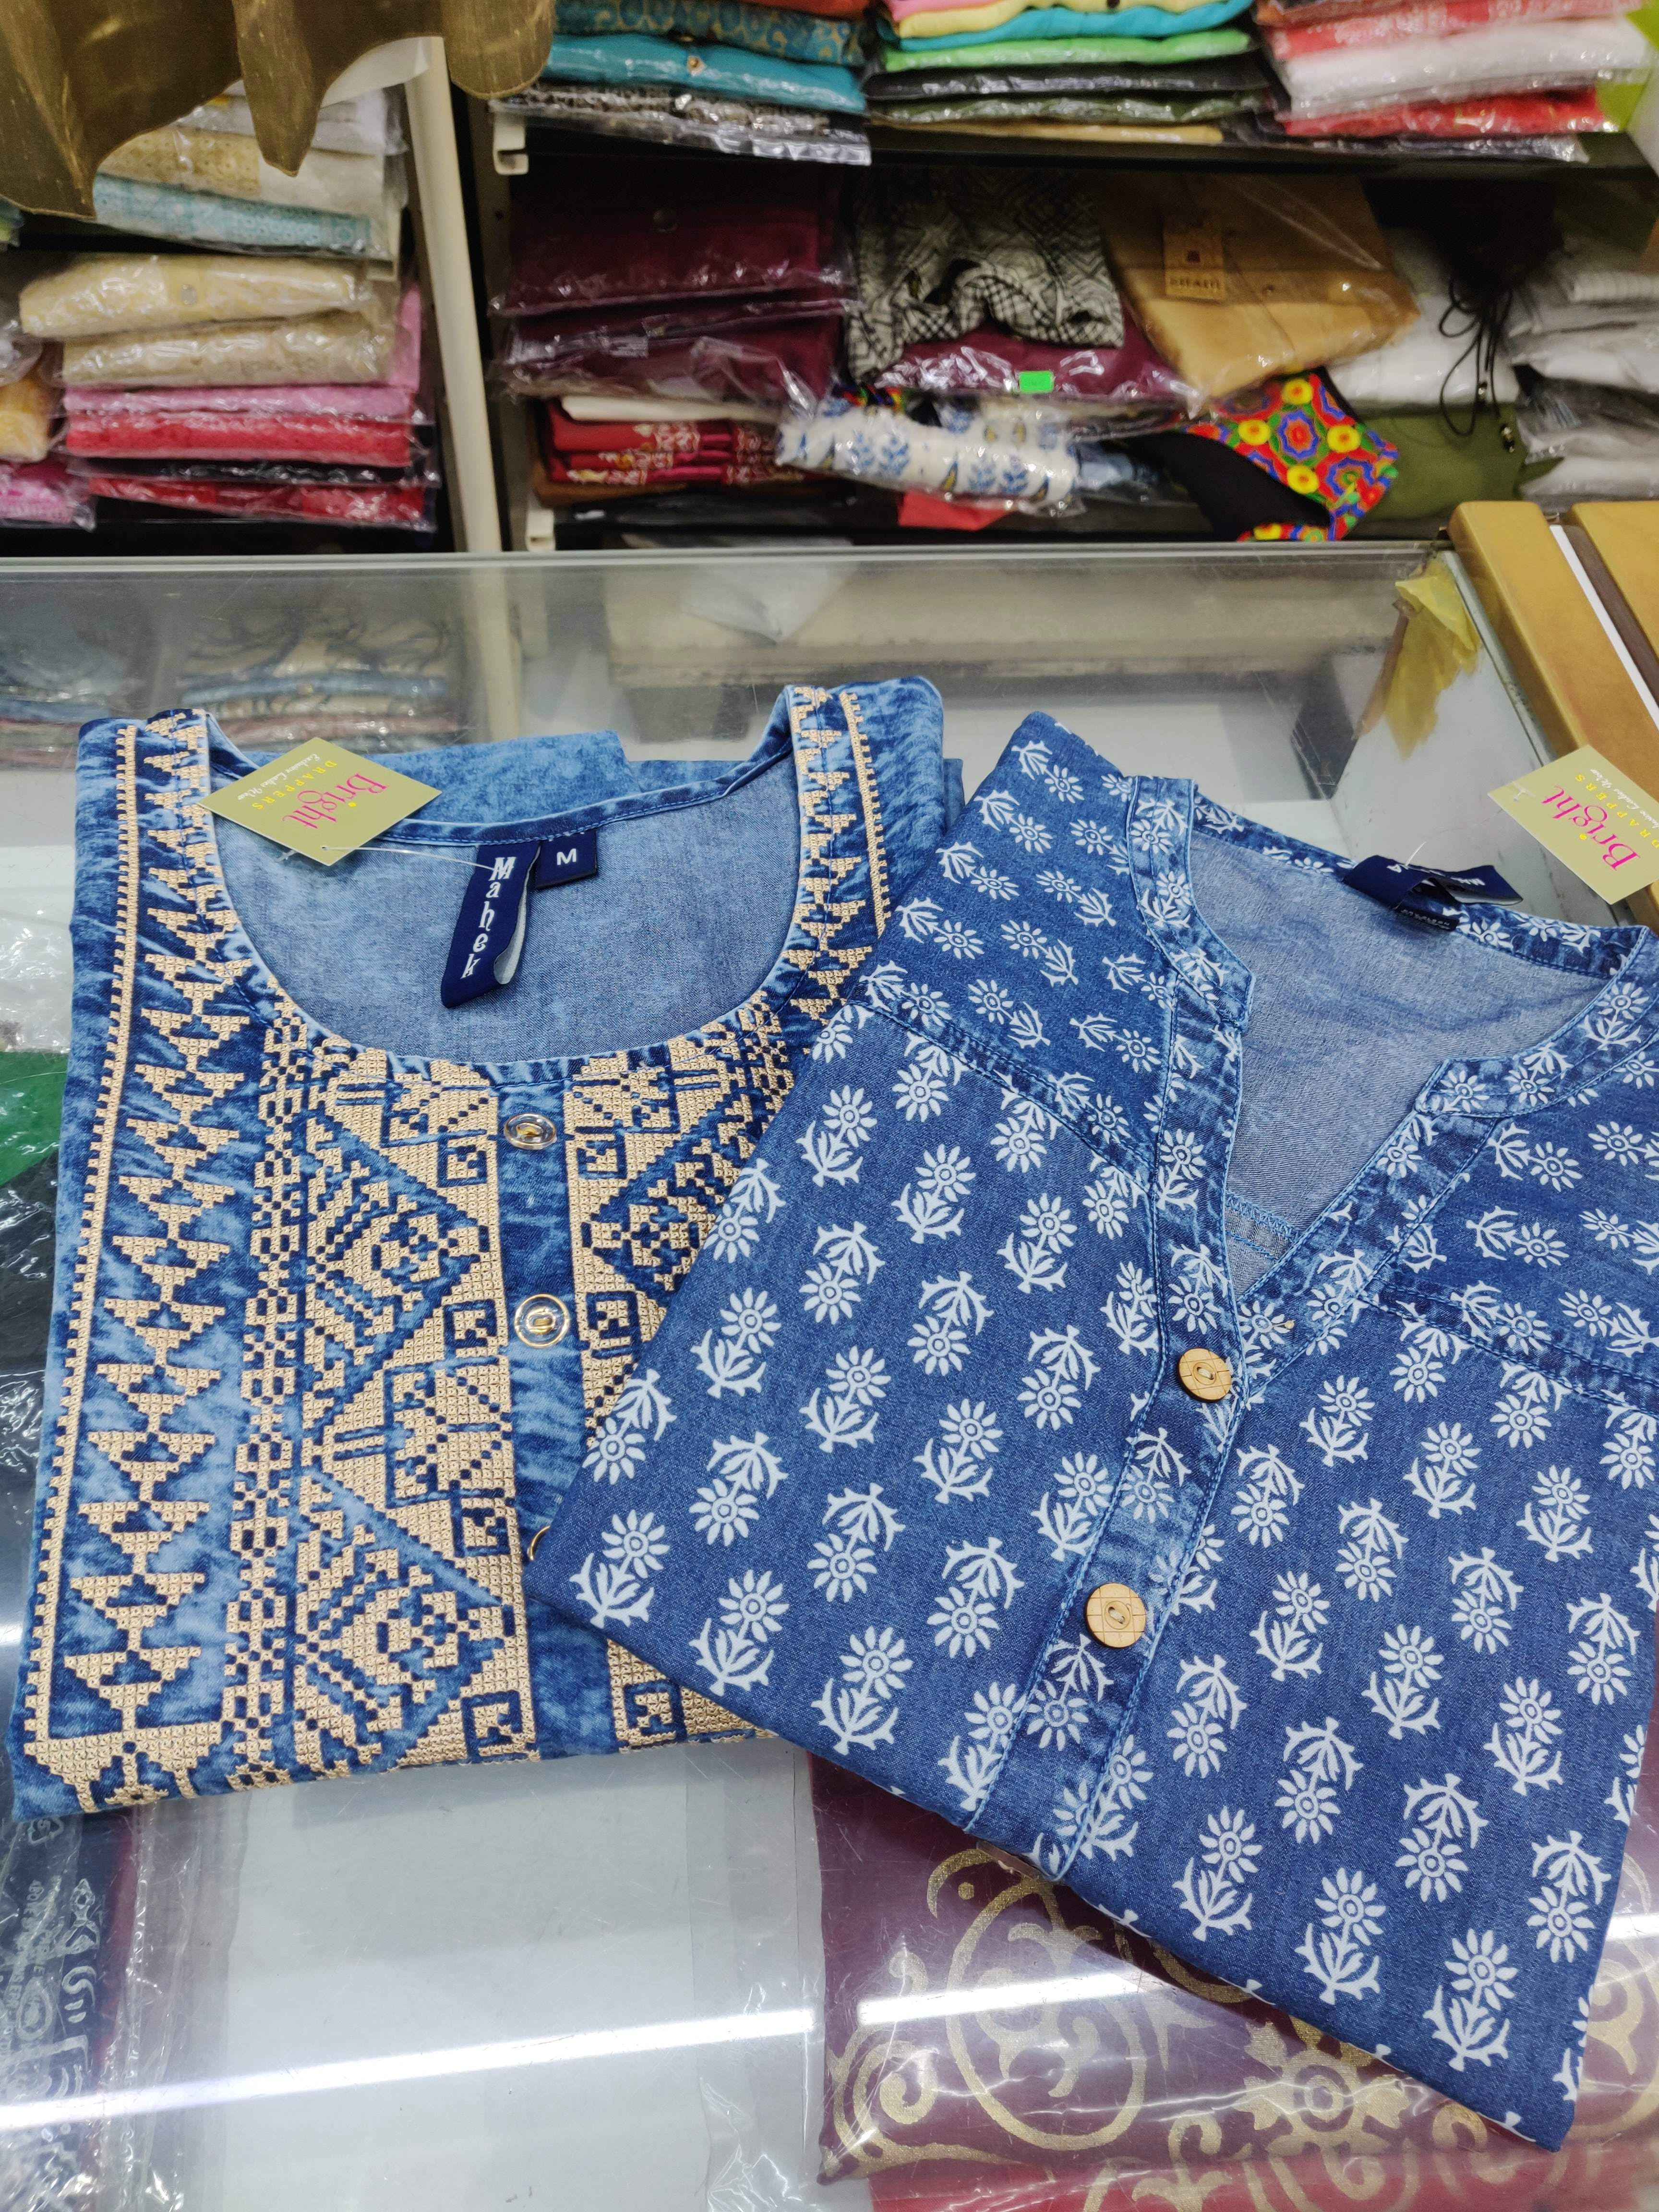 Clothing,Blue,Pattern,Textile,Design,Pattern,Dress,Jeans,Room,T-shirt